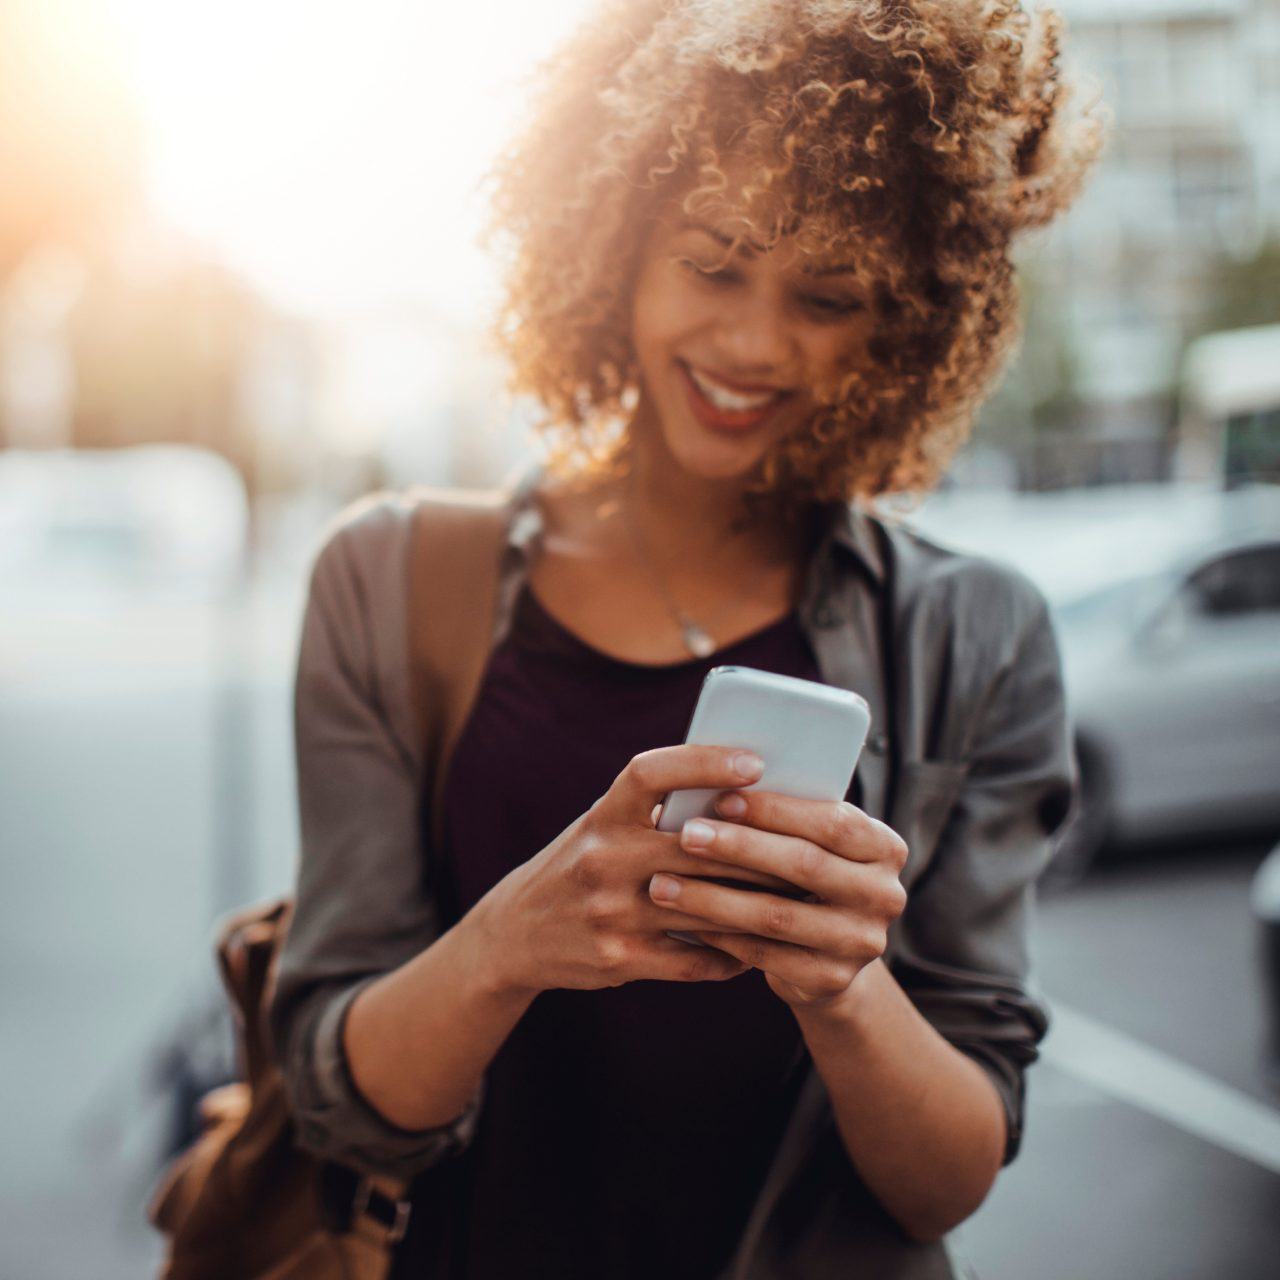 Female woman girl laughing and holding her phone outside